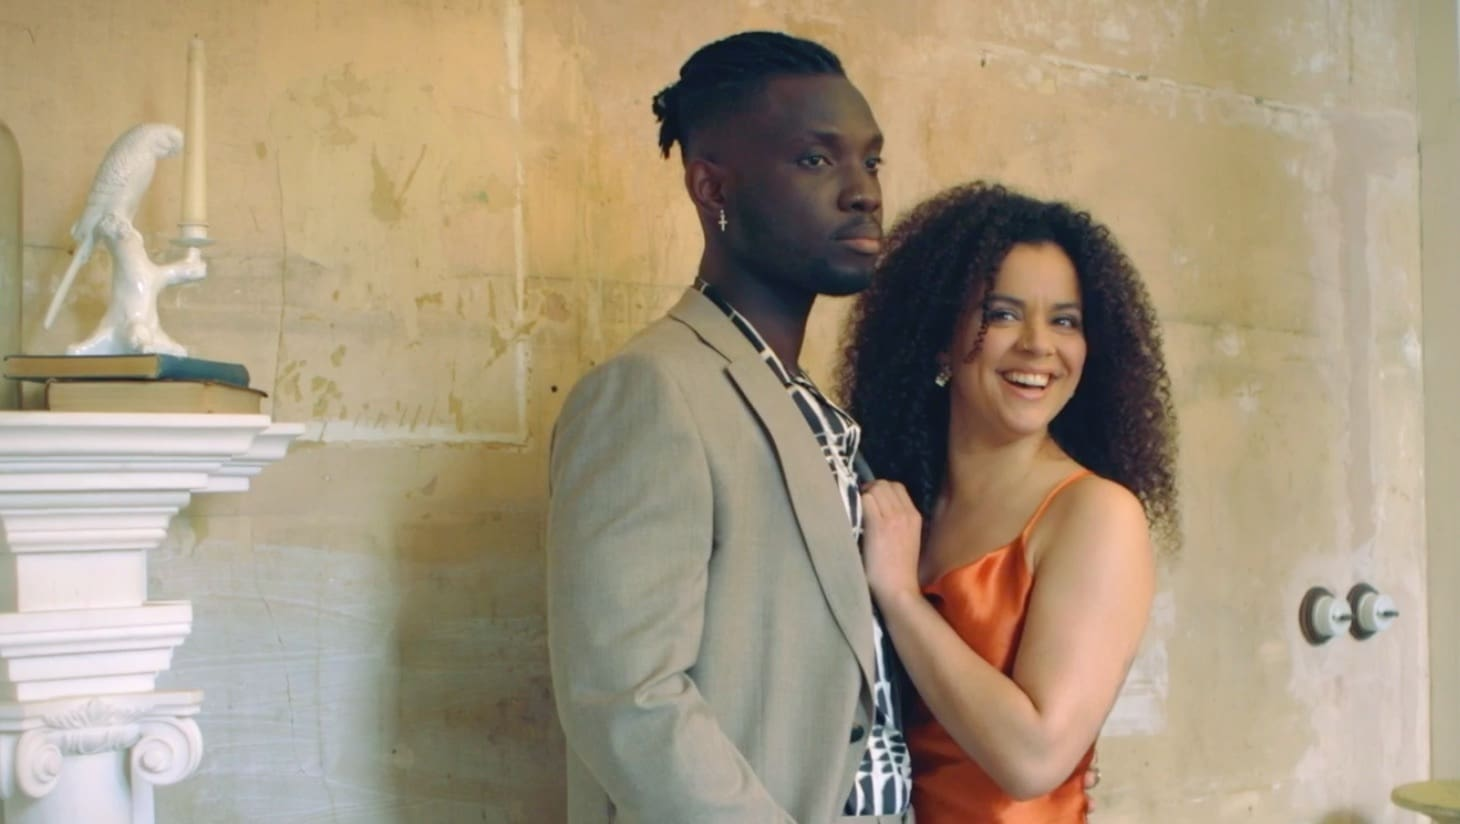 Actors Emmanuel Kojo and Courtney Stapleton posing together for a photoshoot